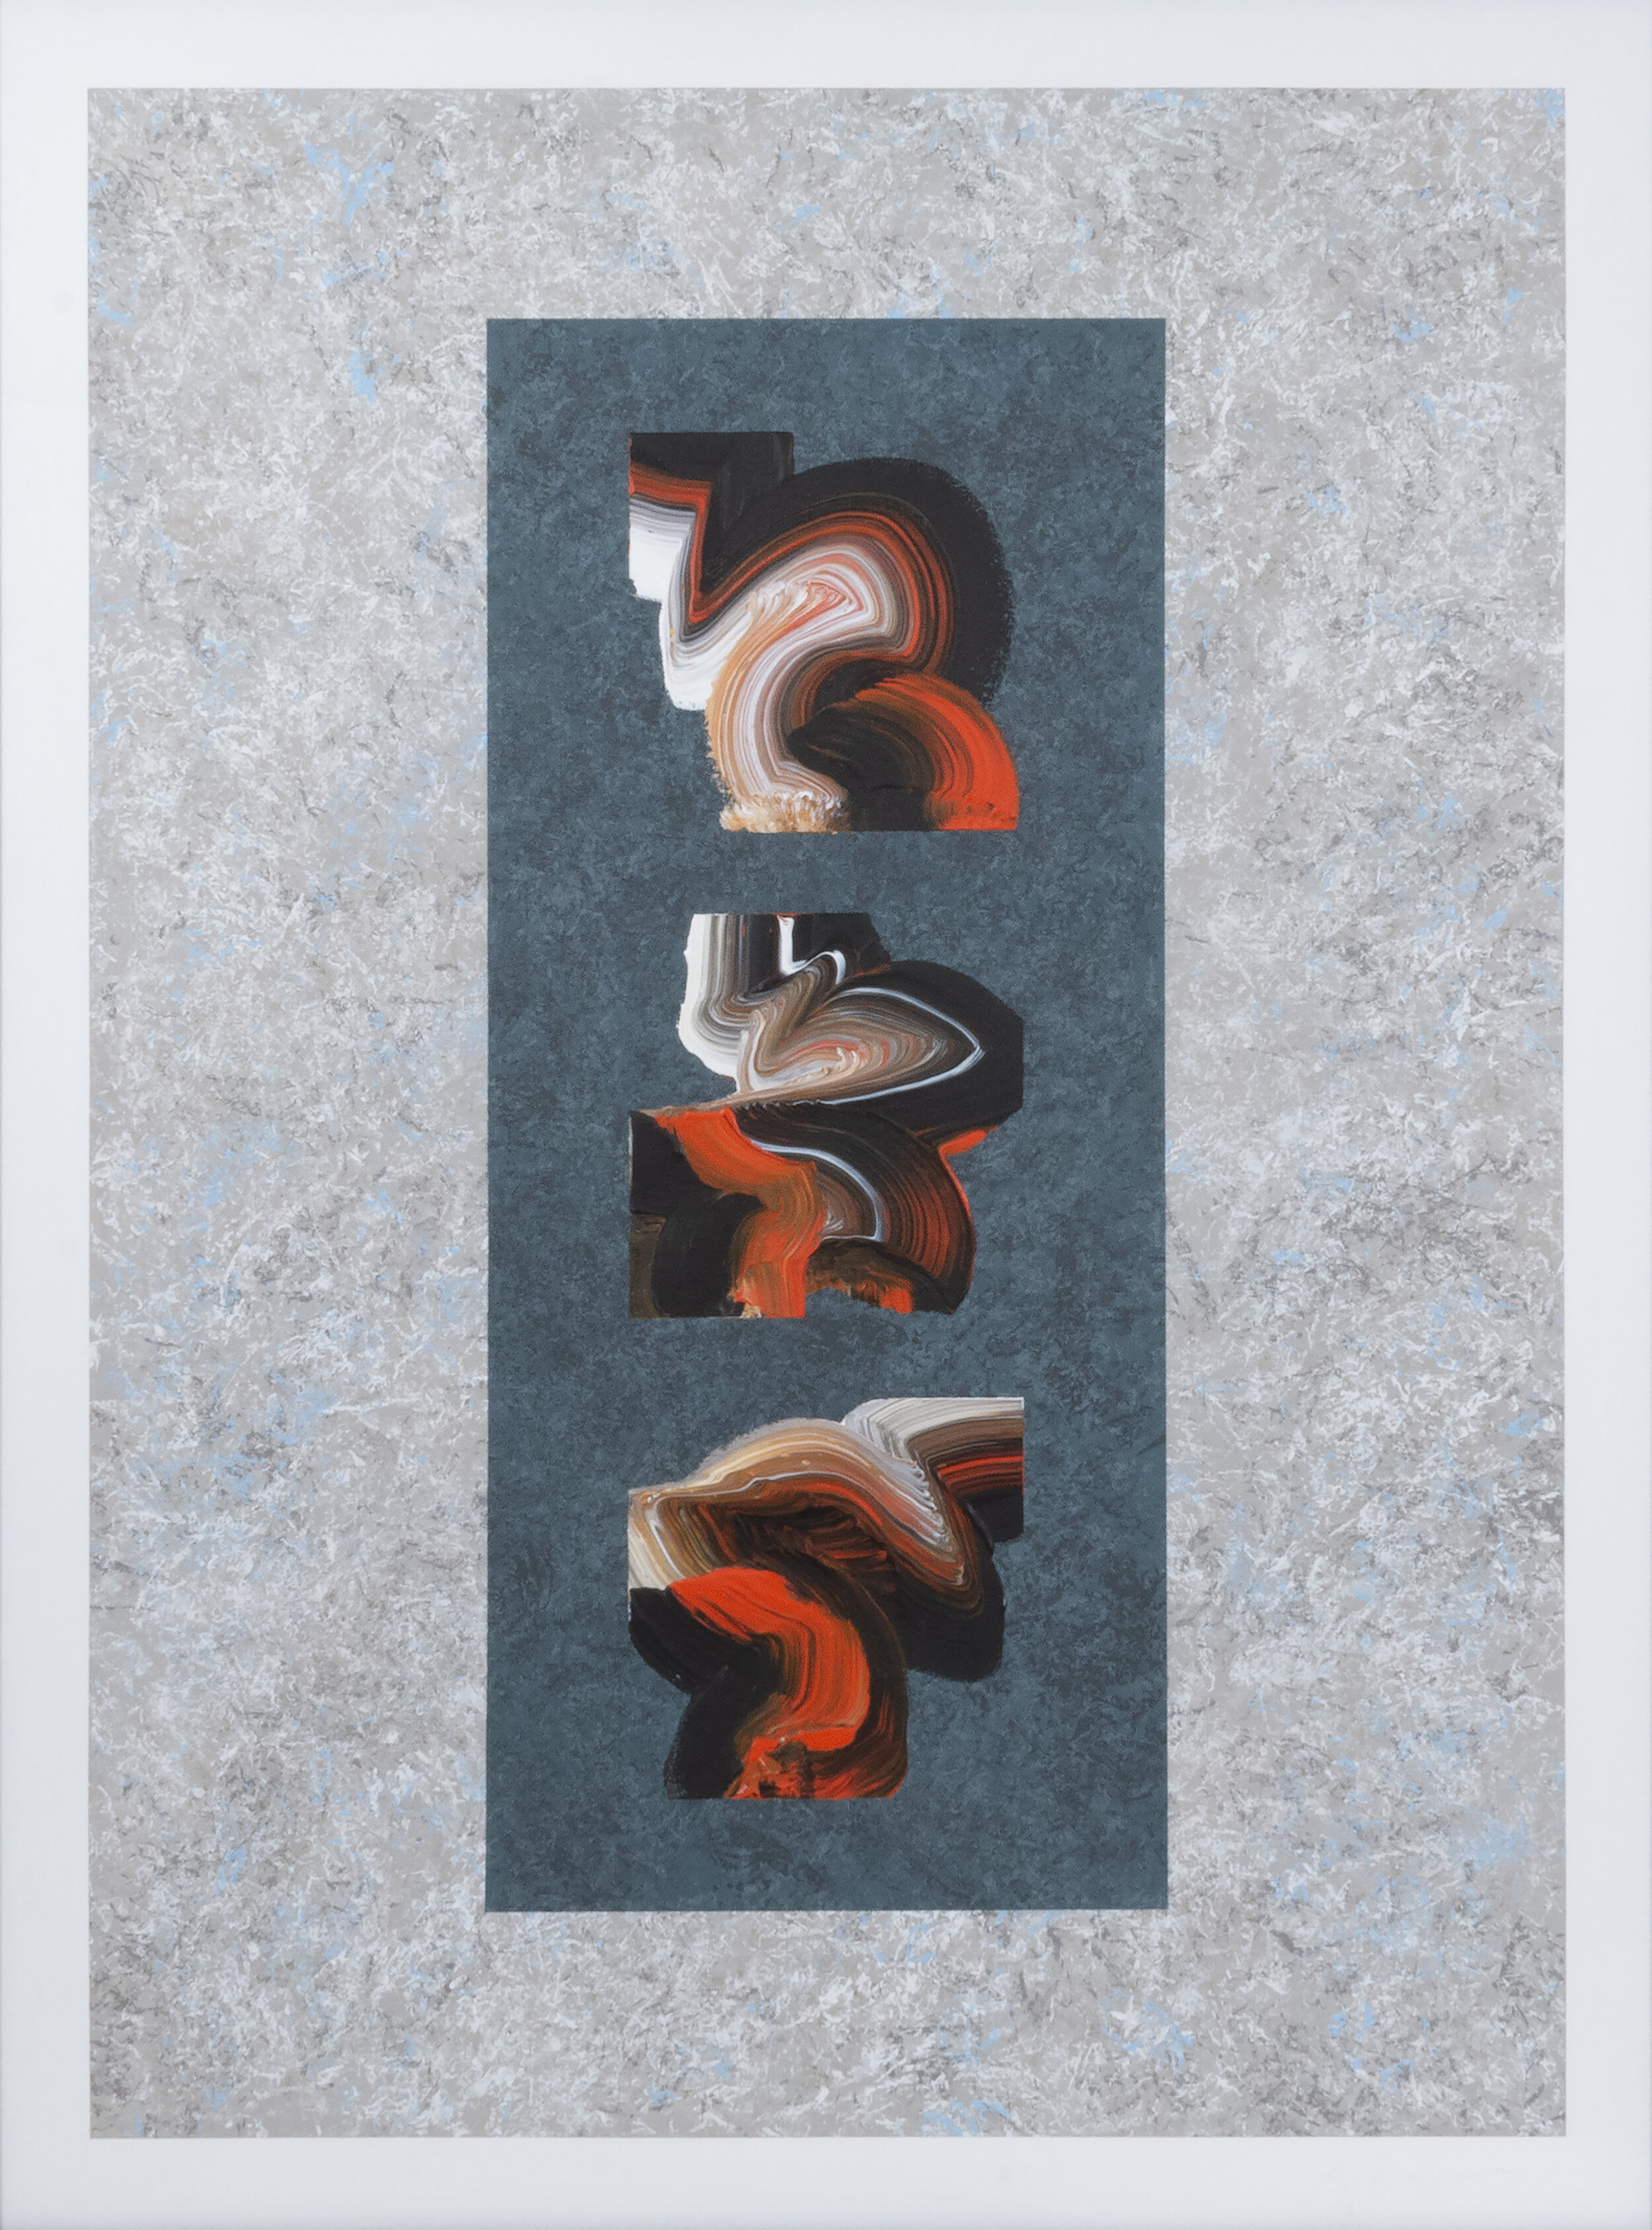 """Taliesin Emergence #5 , 2018, Acrylic on Arches Paper, 41.5"""" x 31.5"""".  Three calligraphic shapes in black, white and orange over a light grey textured background."""